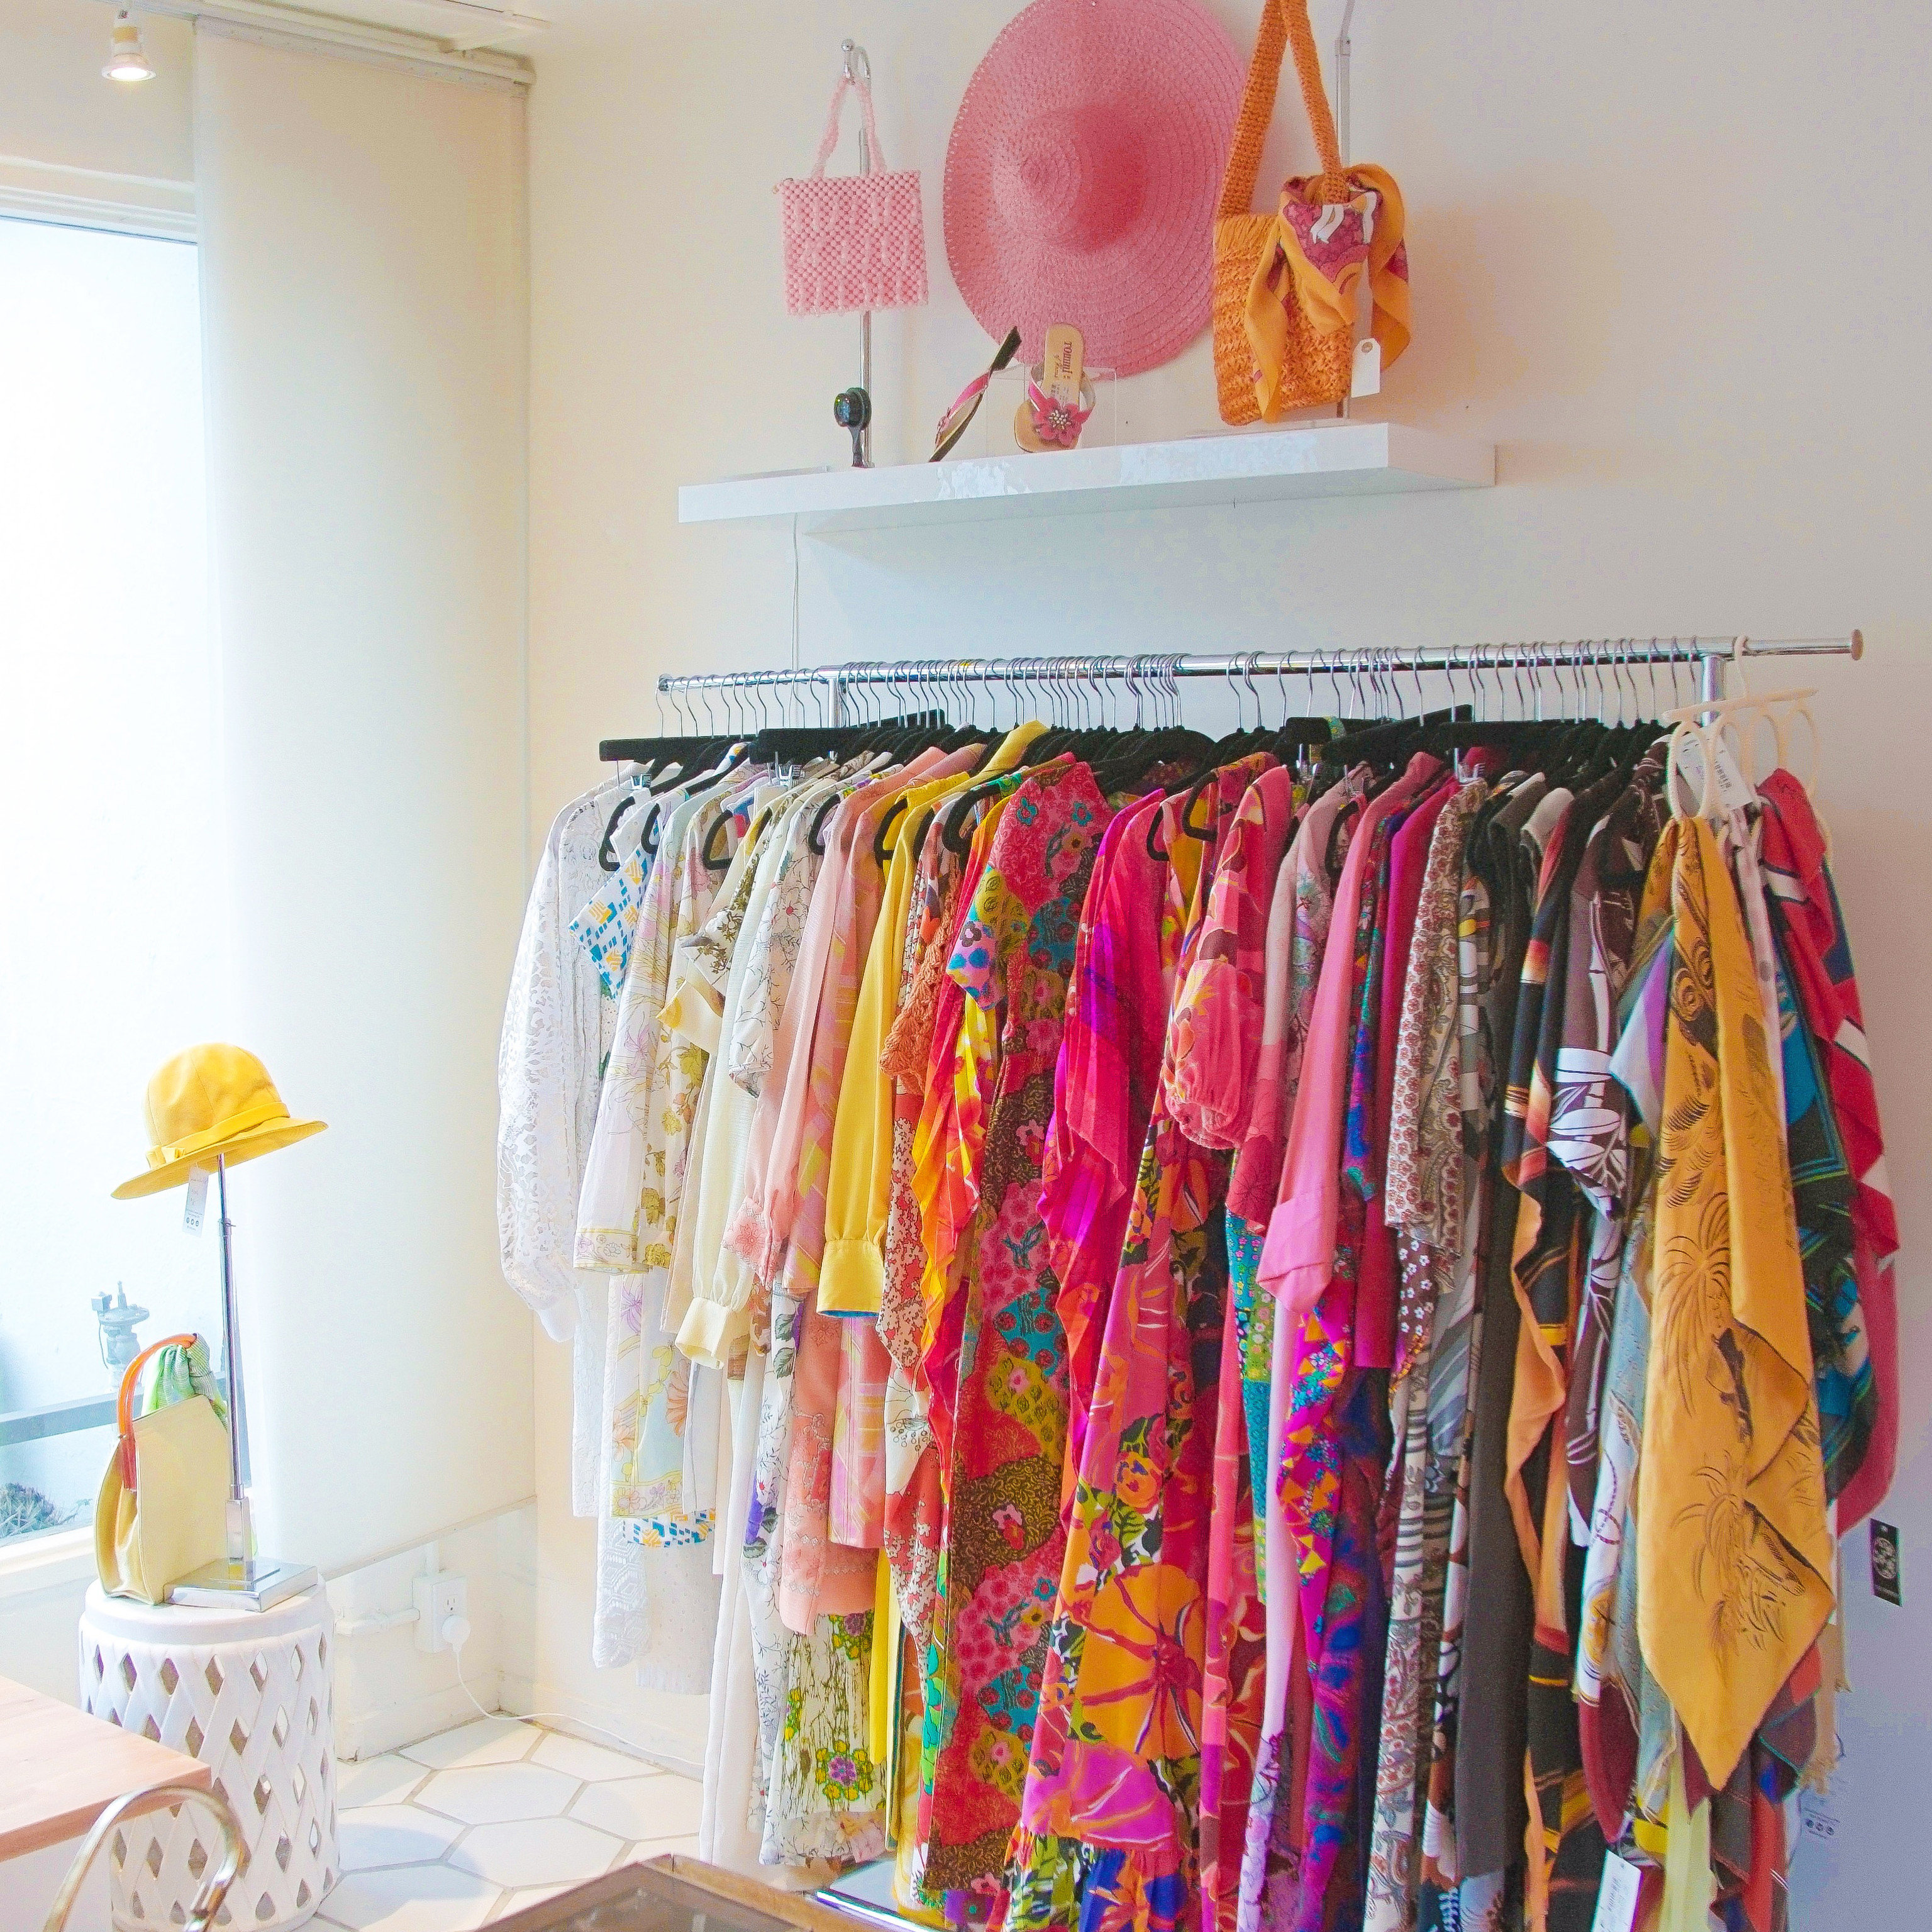 Jetsetter Guides wall color indoor room curtain hanging closet furniture colorful textile colored Bedroom decorated clothes rack